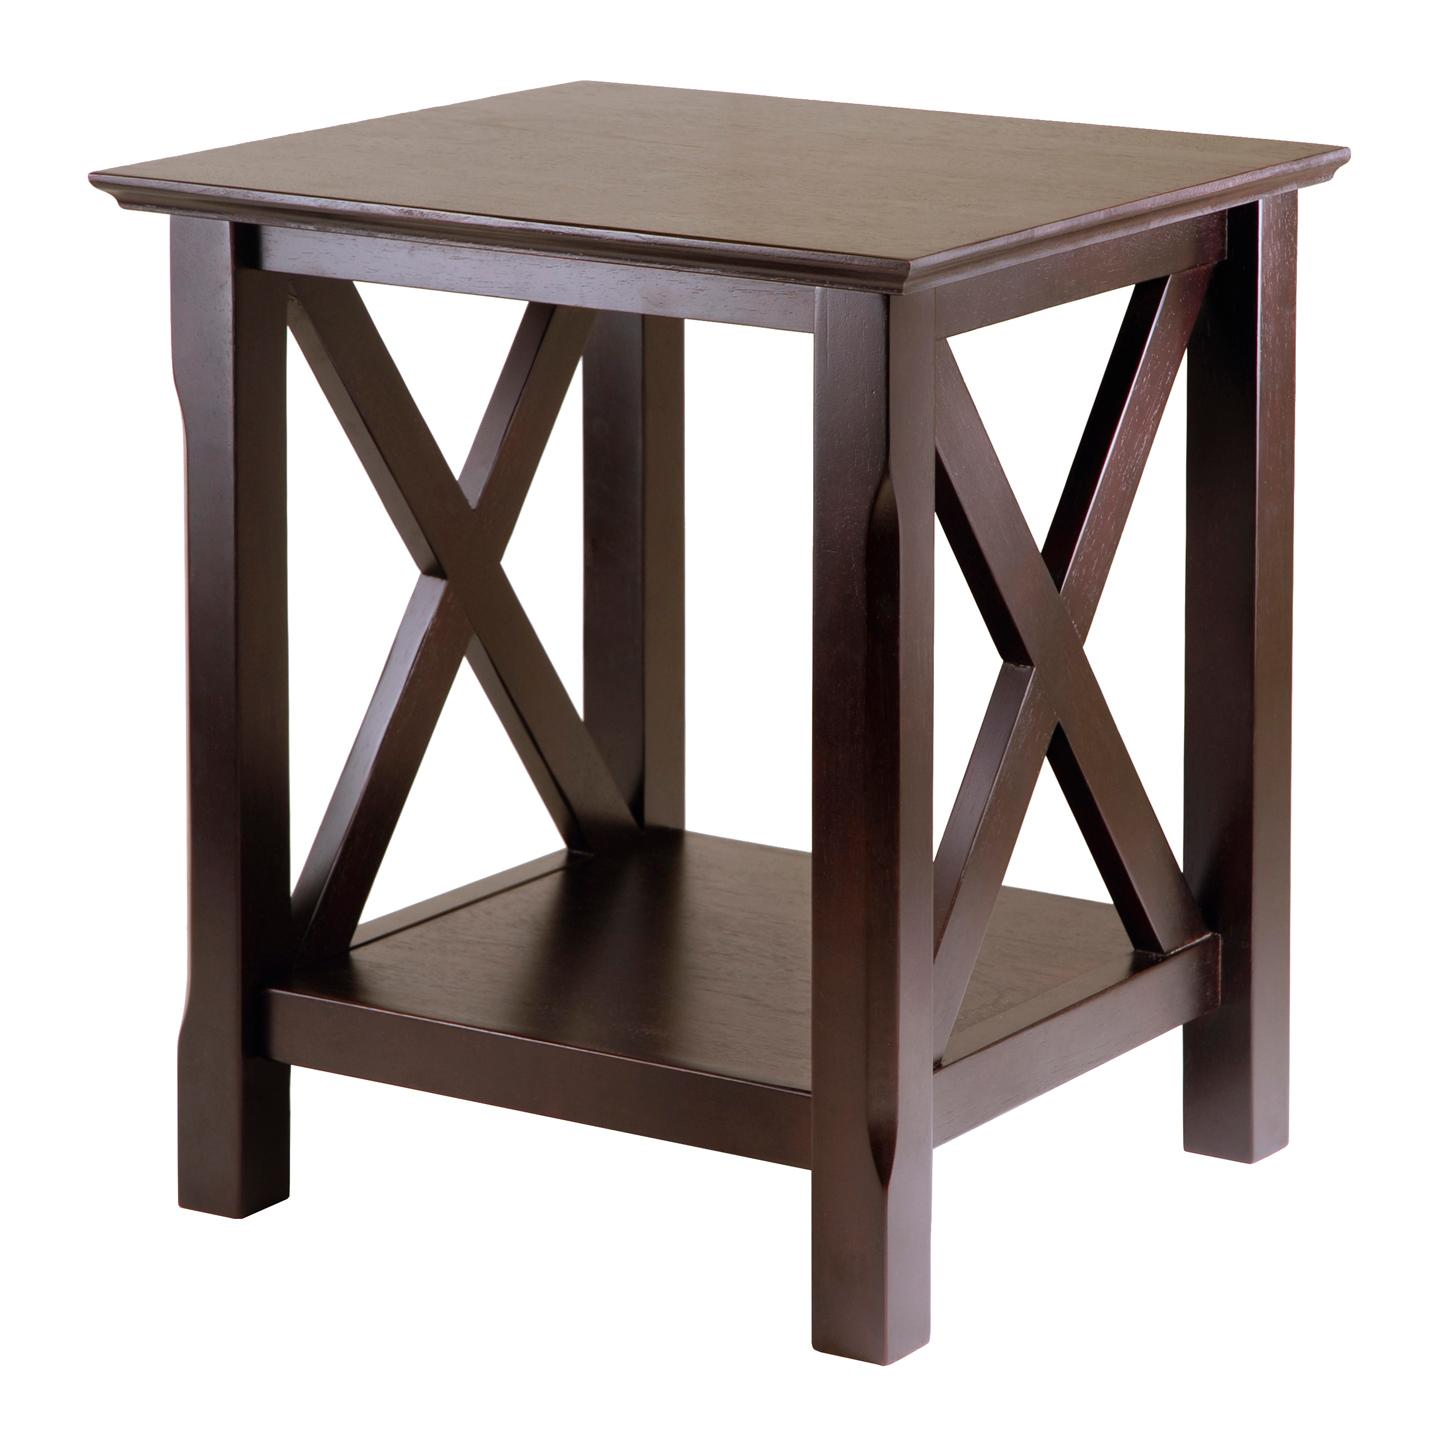 winsome wood xola end table home kitchen storage tables furniture from the manufacturer lazy boy dining pipe stand desk pulaski accents legends reviews ashley rising coffee small